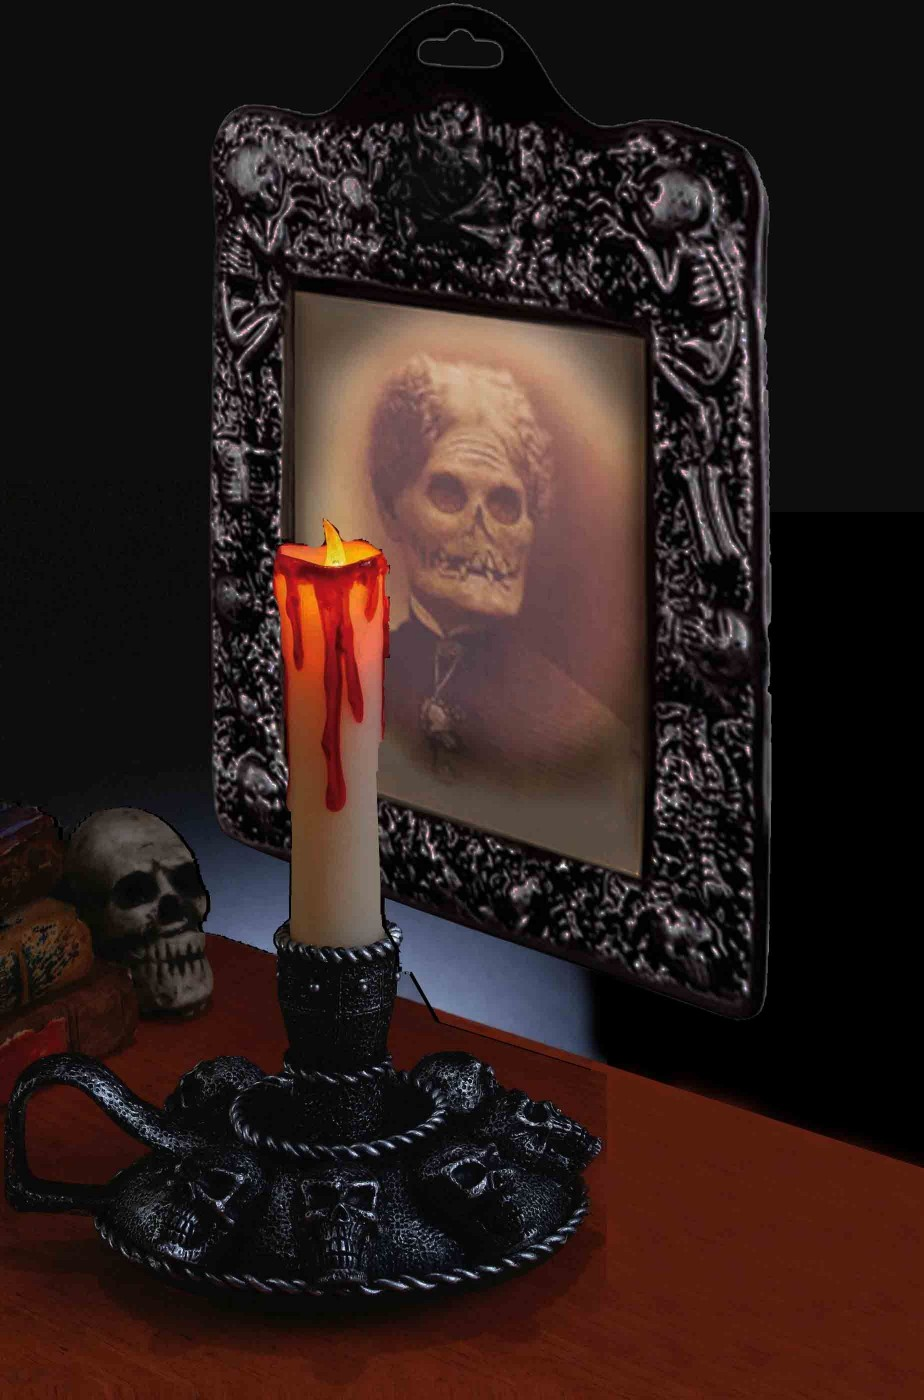 Set decorazioni Halloween da interno candelabro e vecchia morta